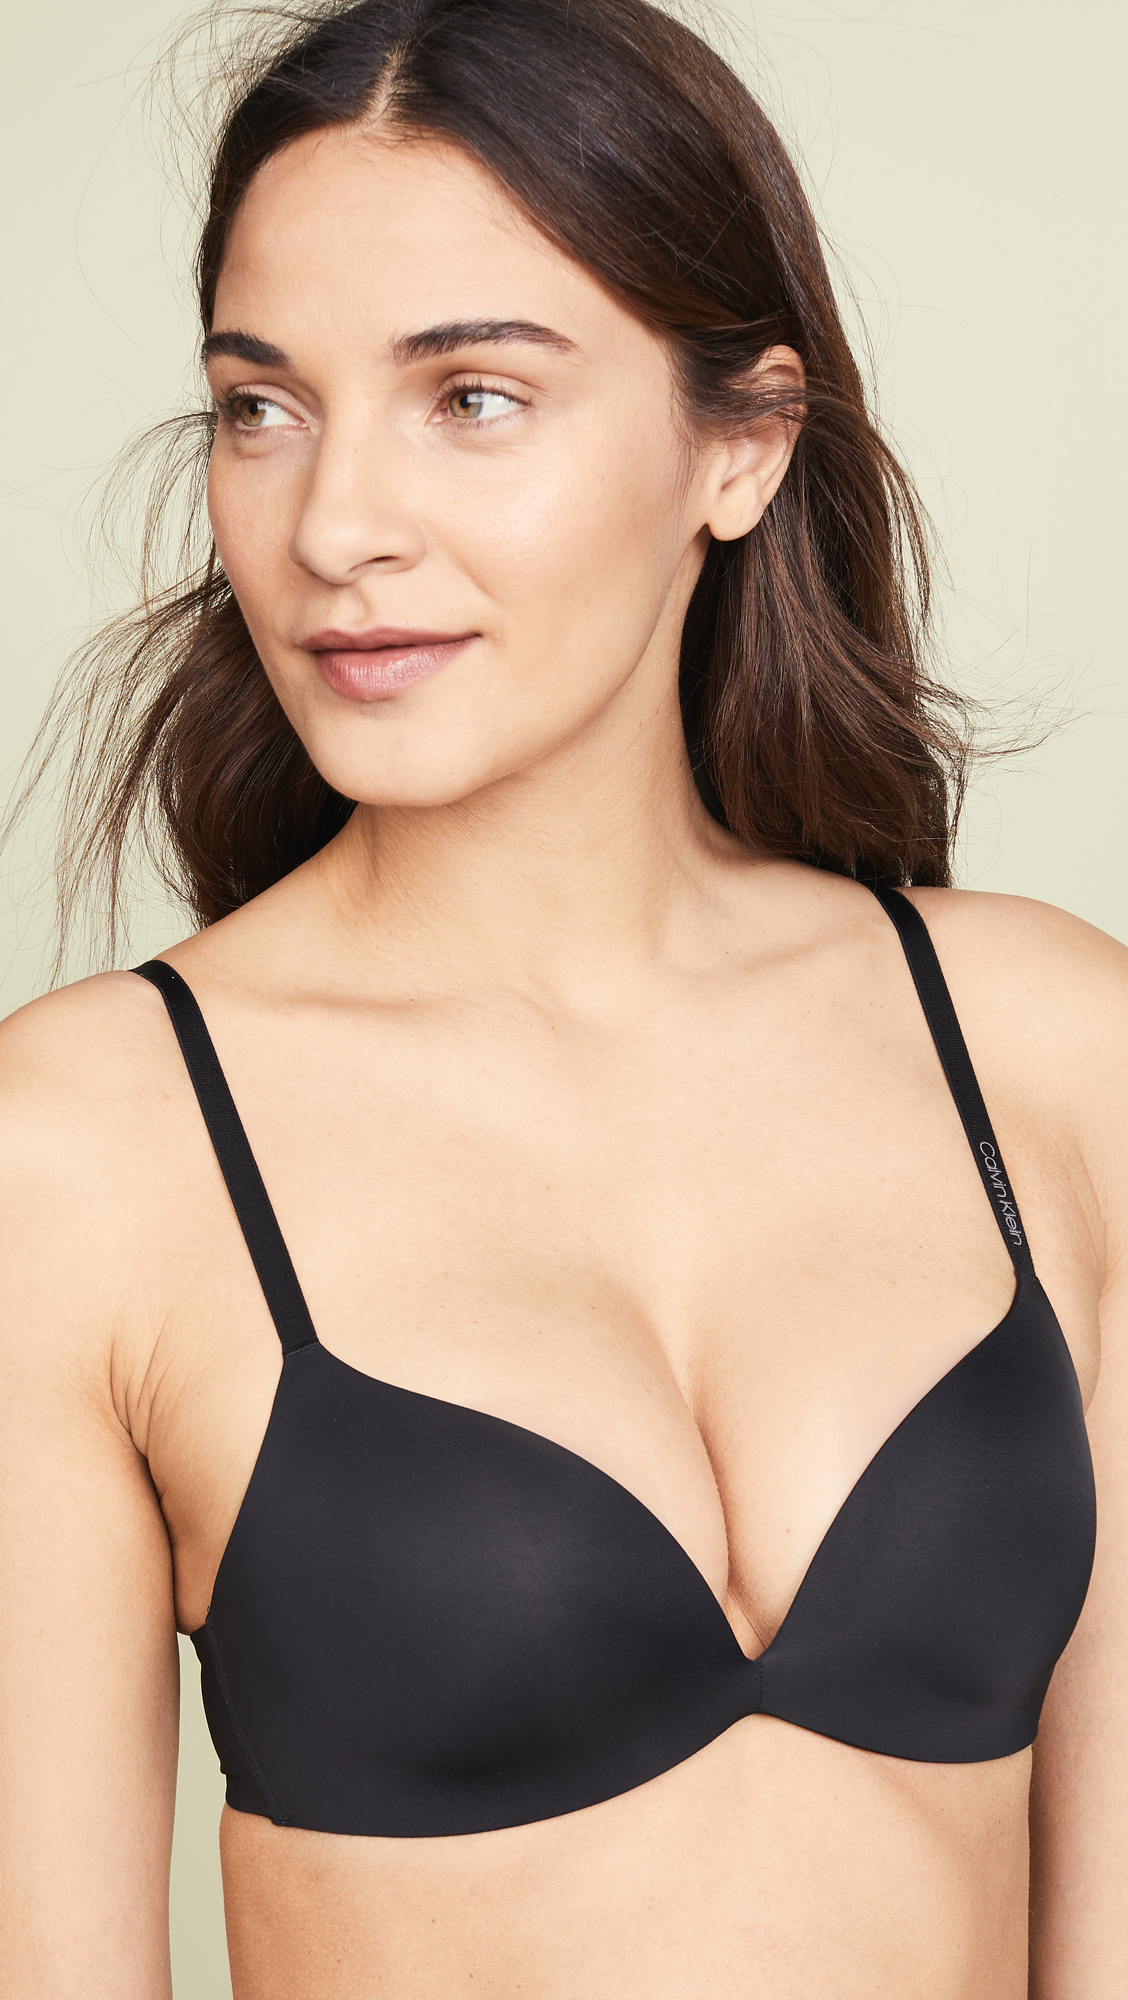 a530d41c36 Calvin Klein Underwear Form Push Up Bra